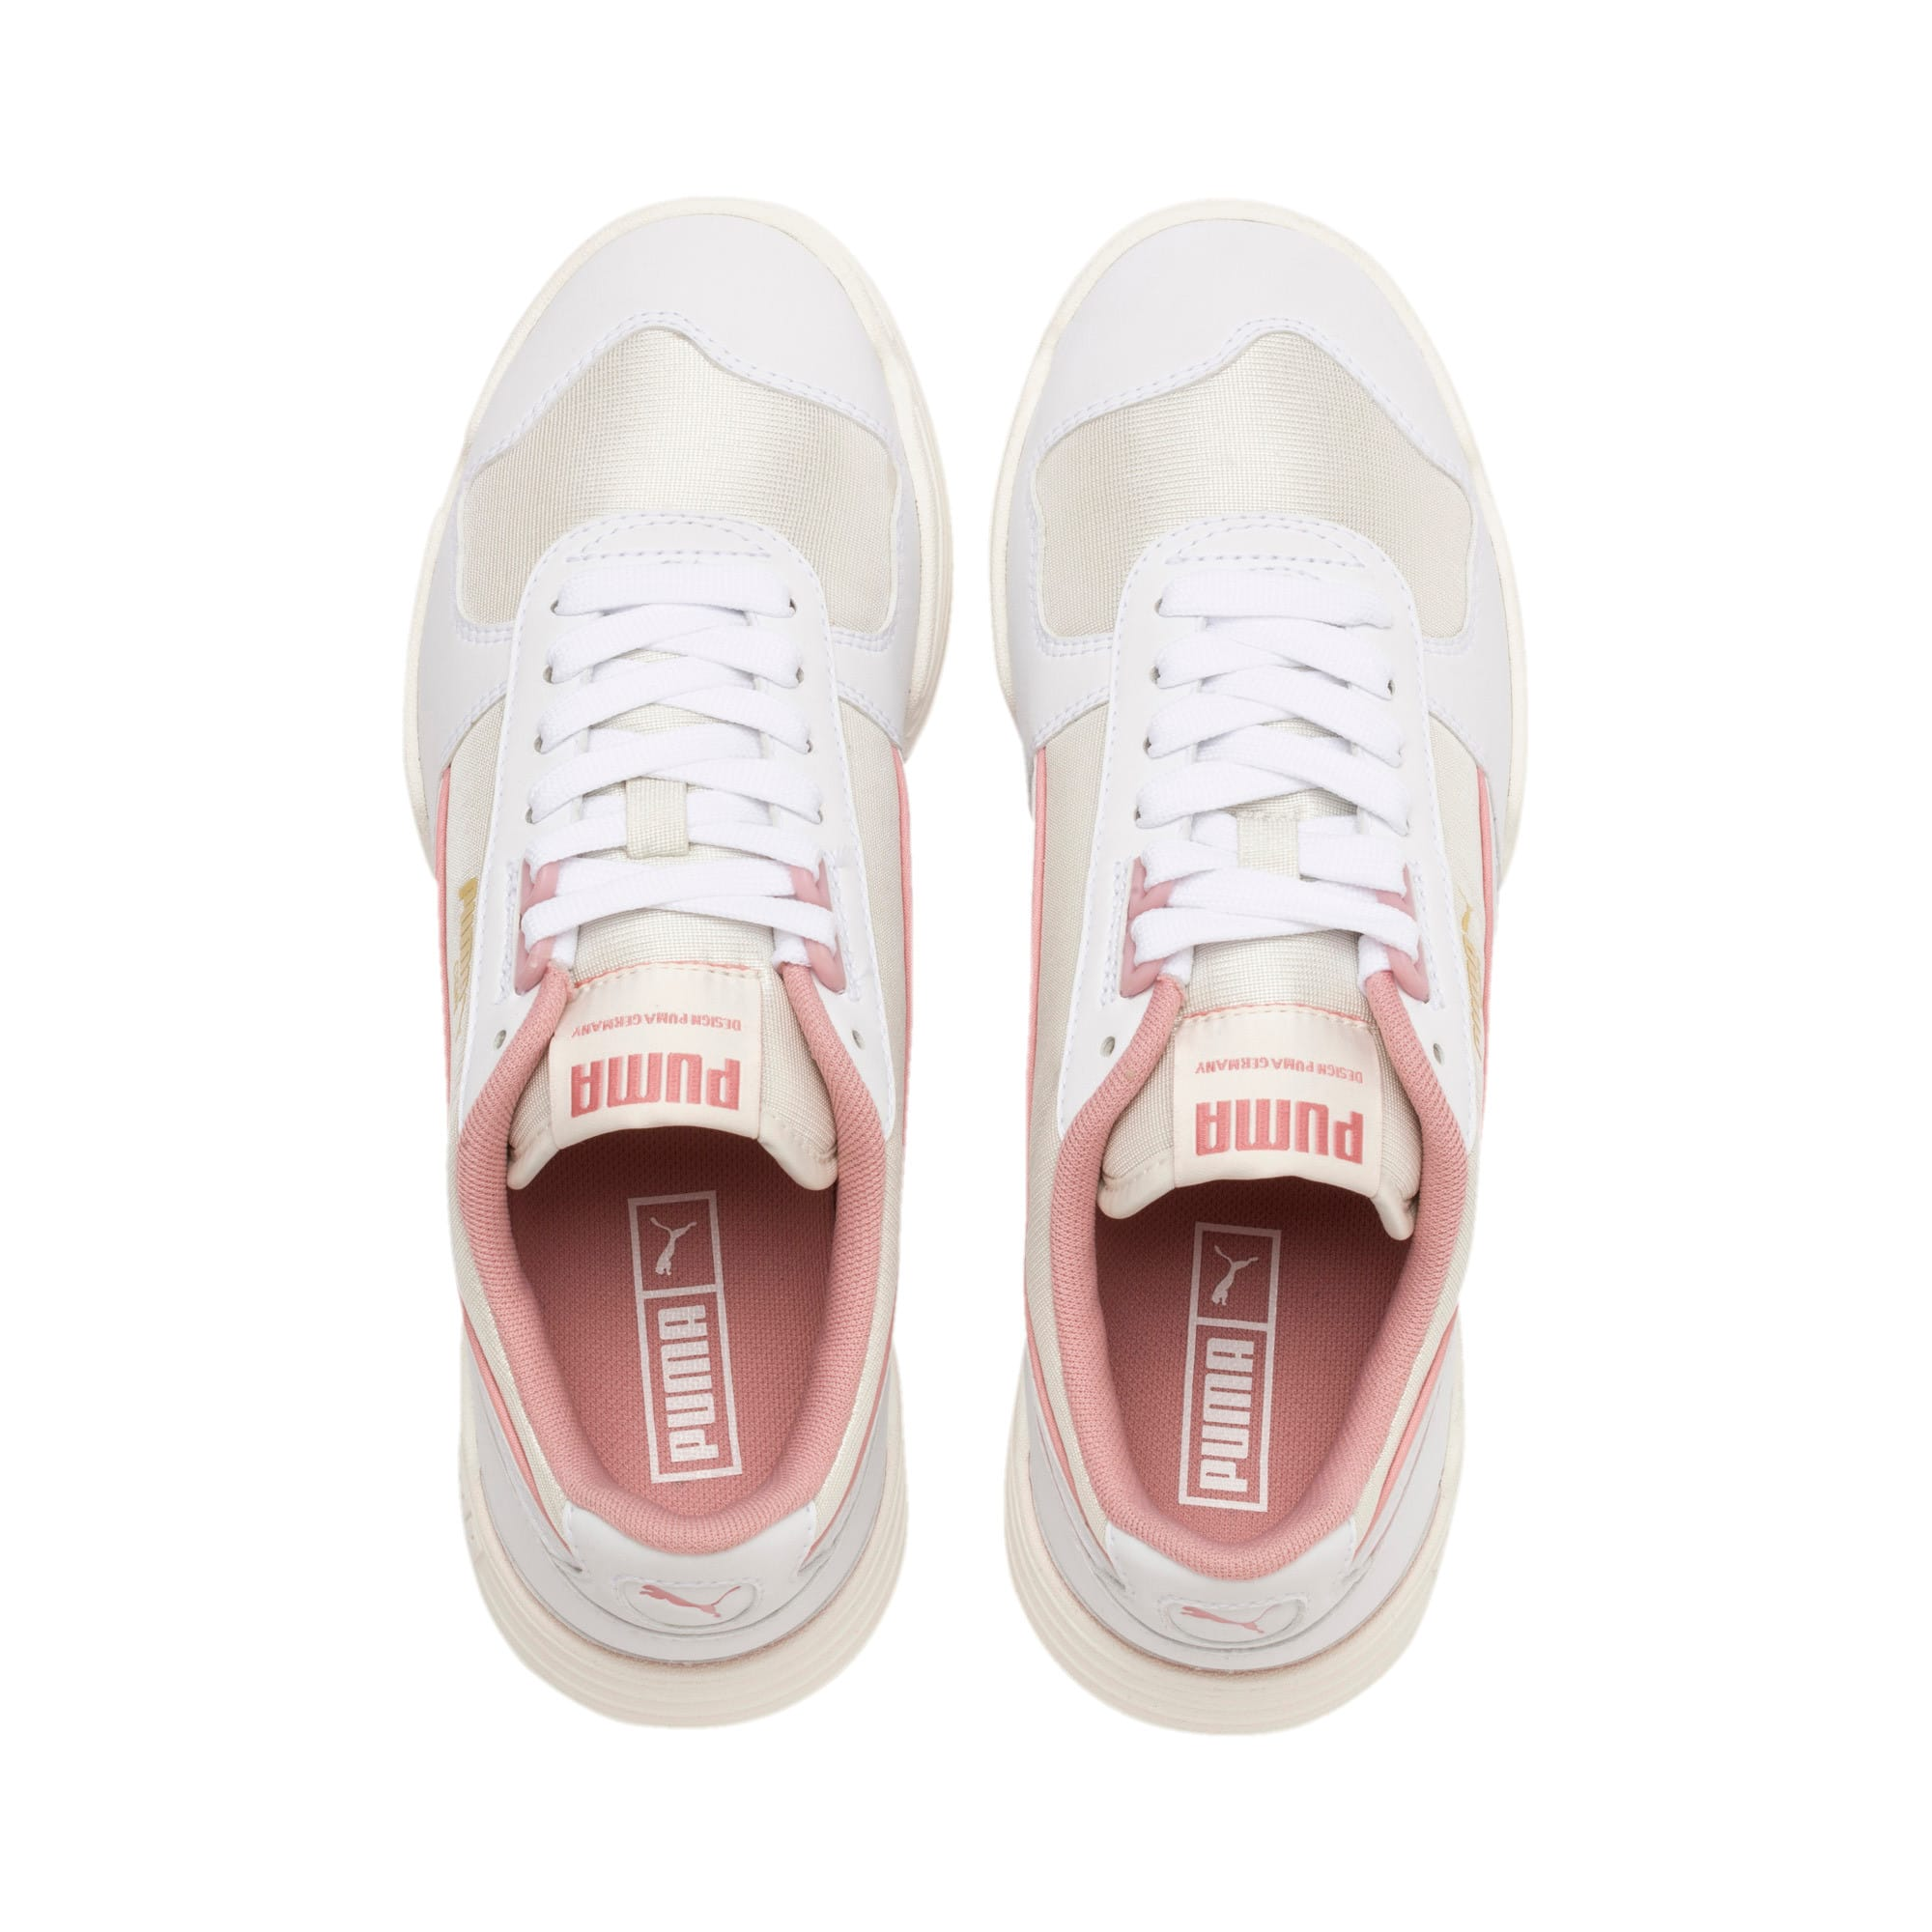 Thumbnail 8 of CGR Original Trainers, PWht-Bridal Rose-Marshmallow, medium-IND